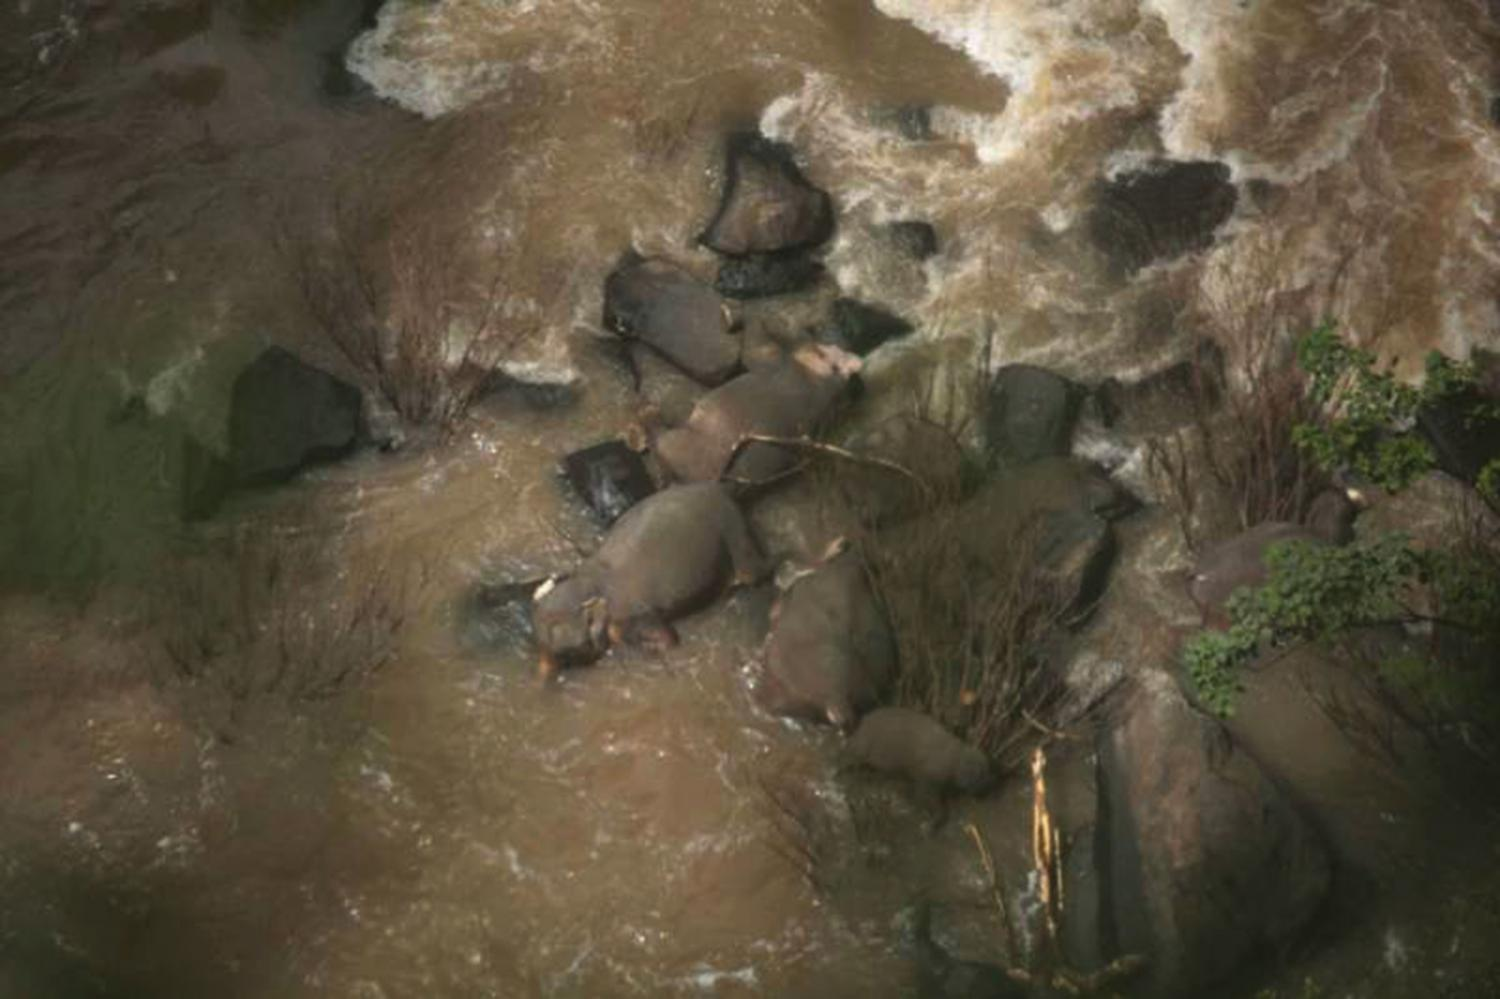 The bodies of six elephants are seen at the scene of the incident.